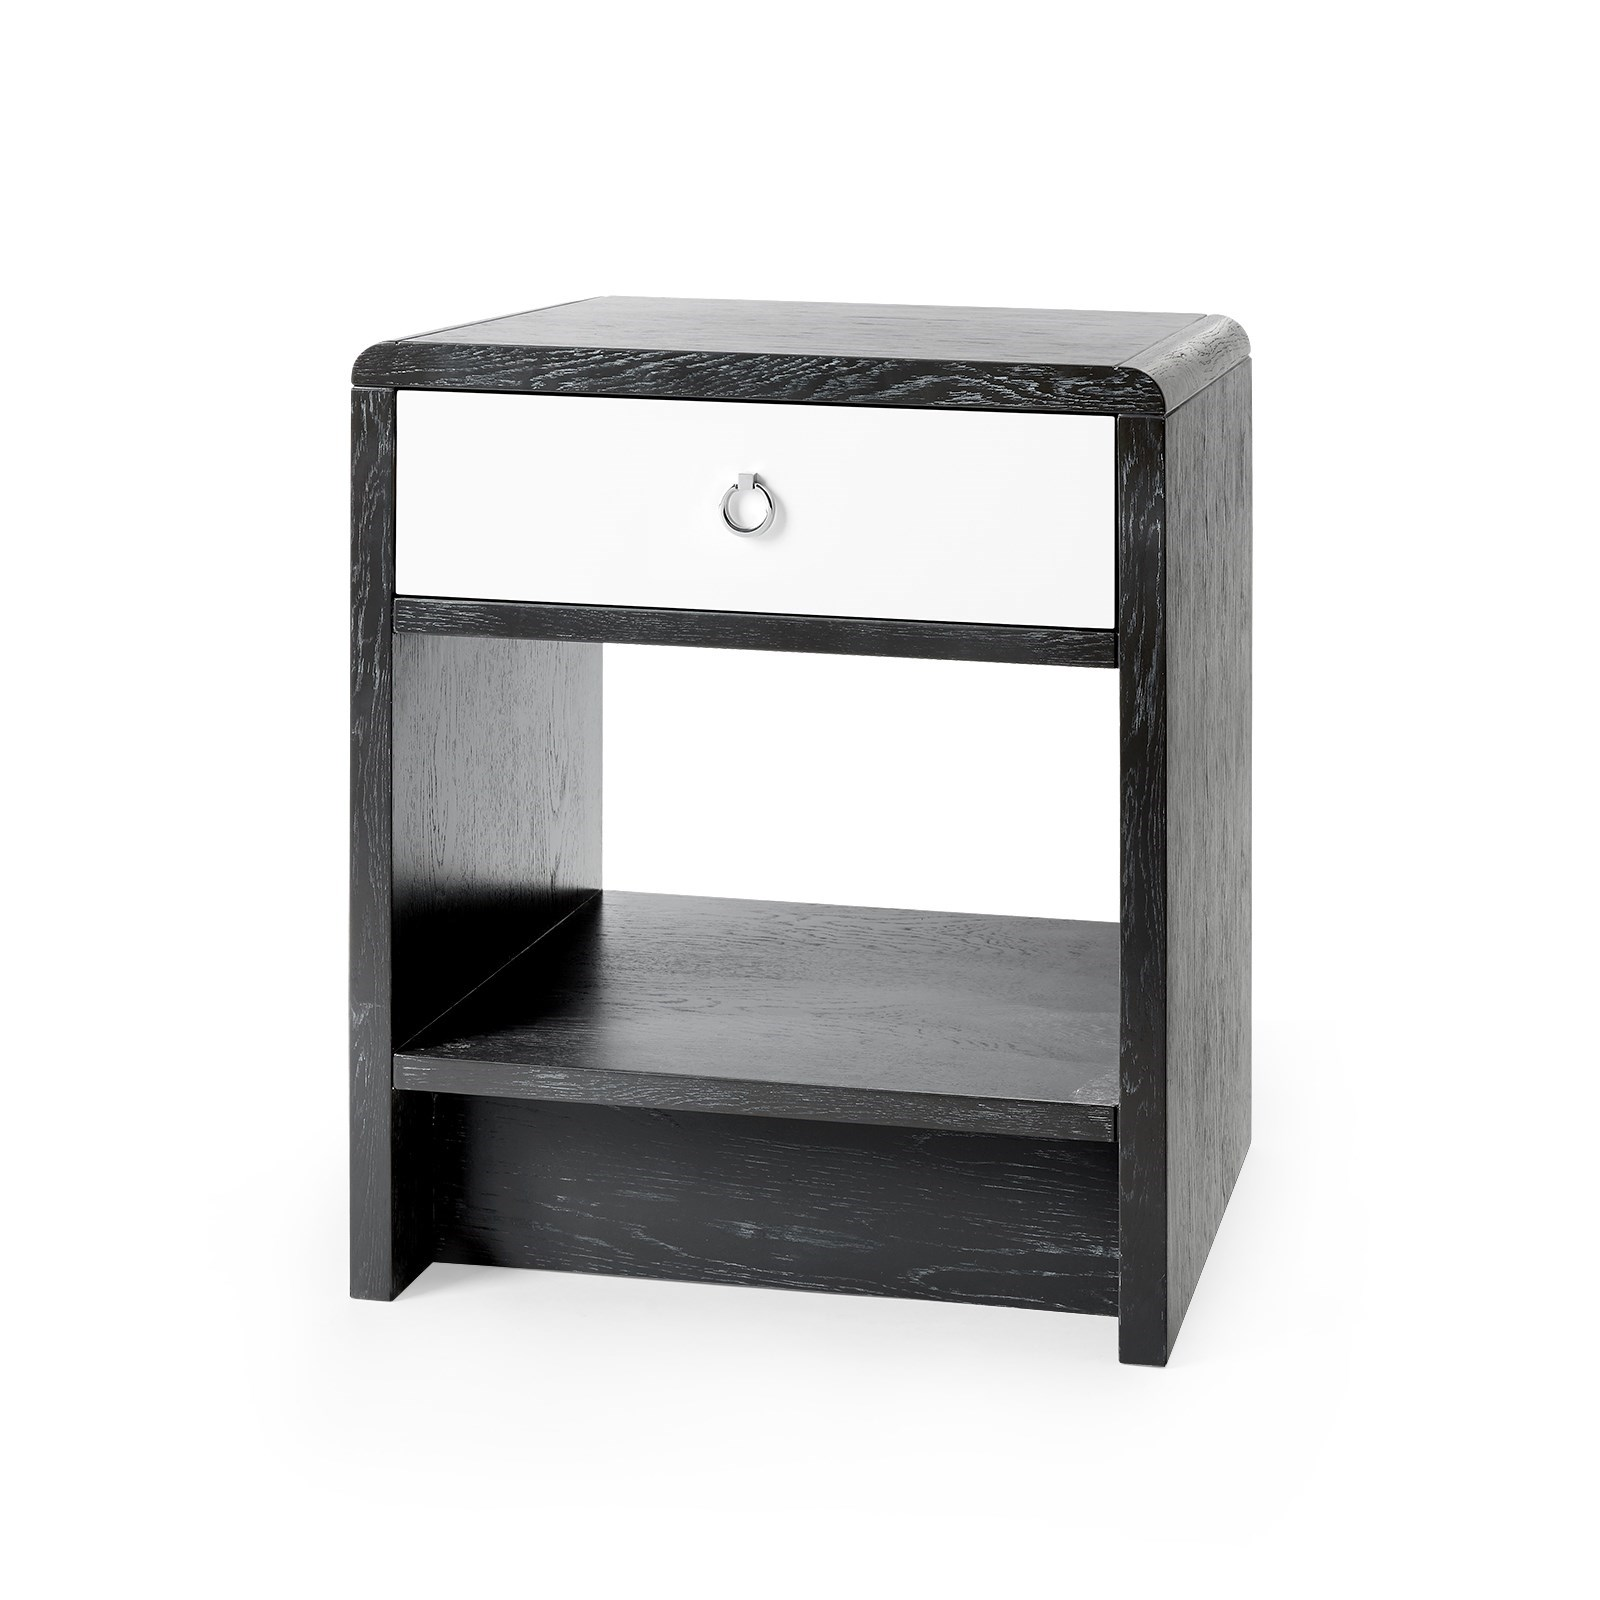 unique tablets solid glamorous home table amusing at decor coffee chair drawer supplement tables furniture bedside black active with lift cherry veneer wood effects peacock rectangular side finish wooden cabinet